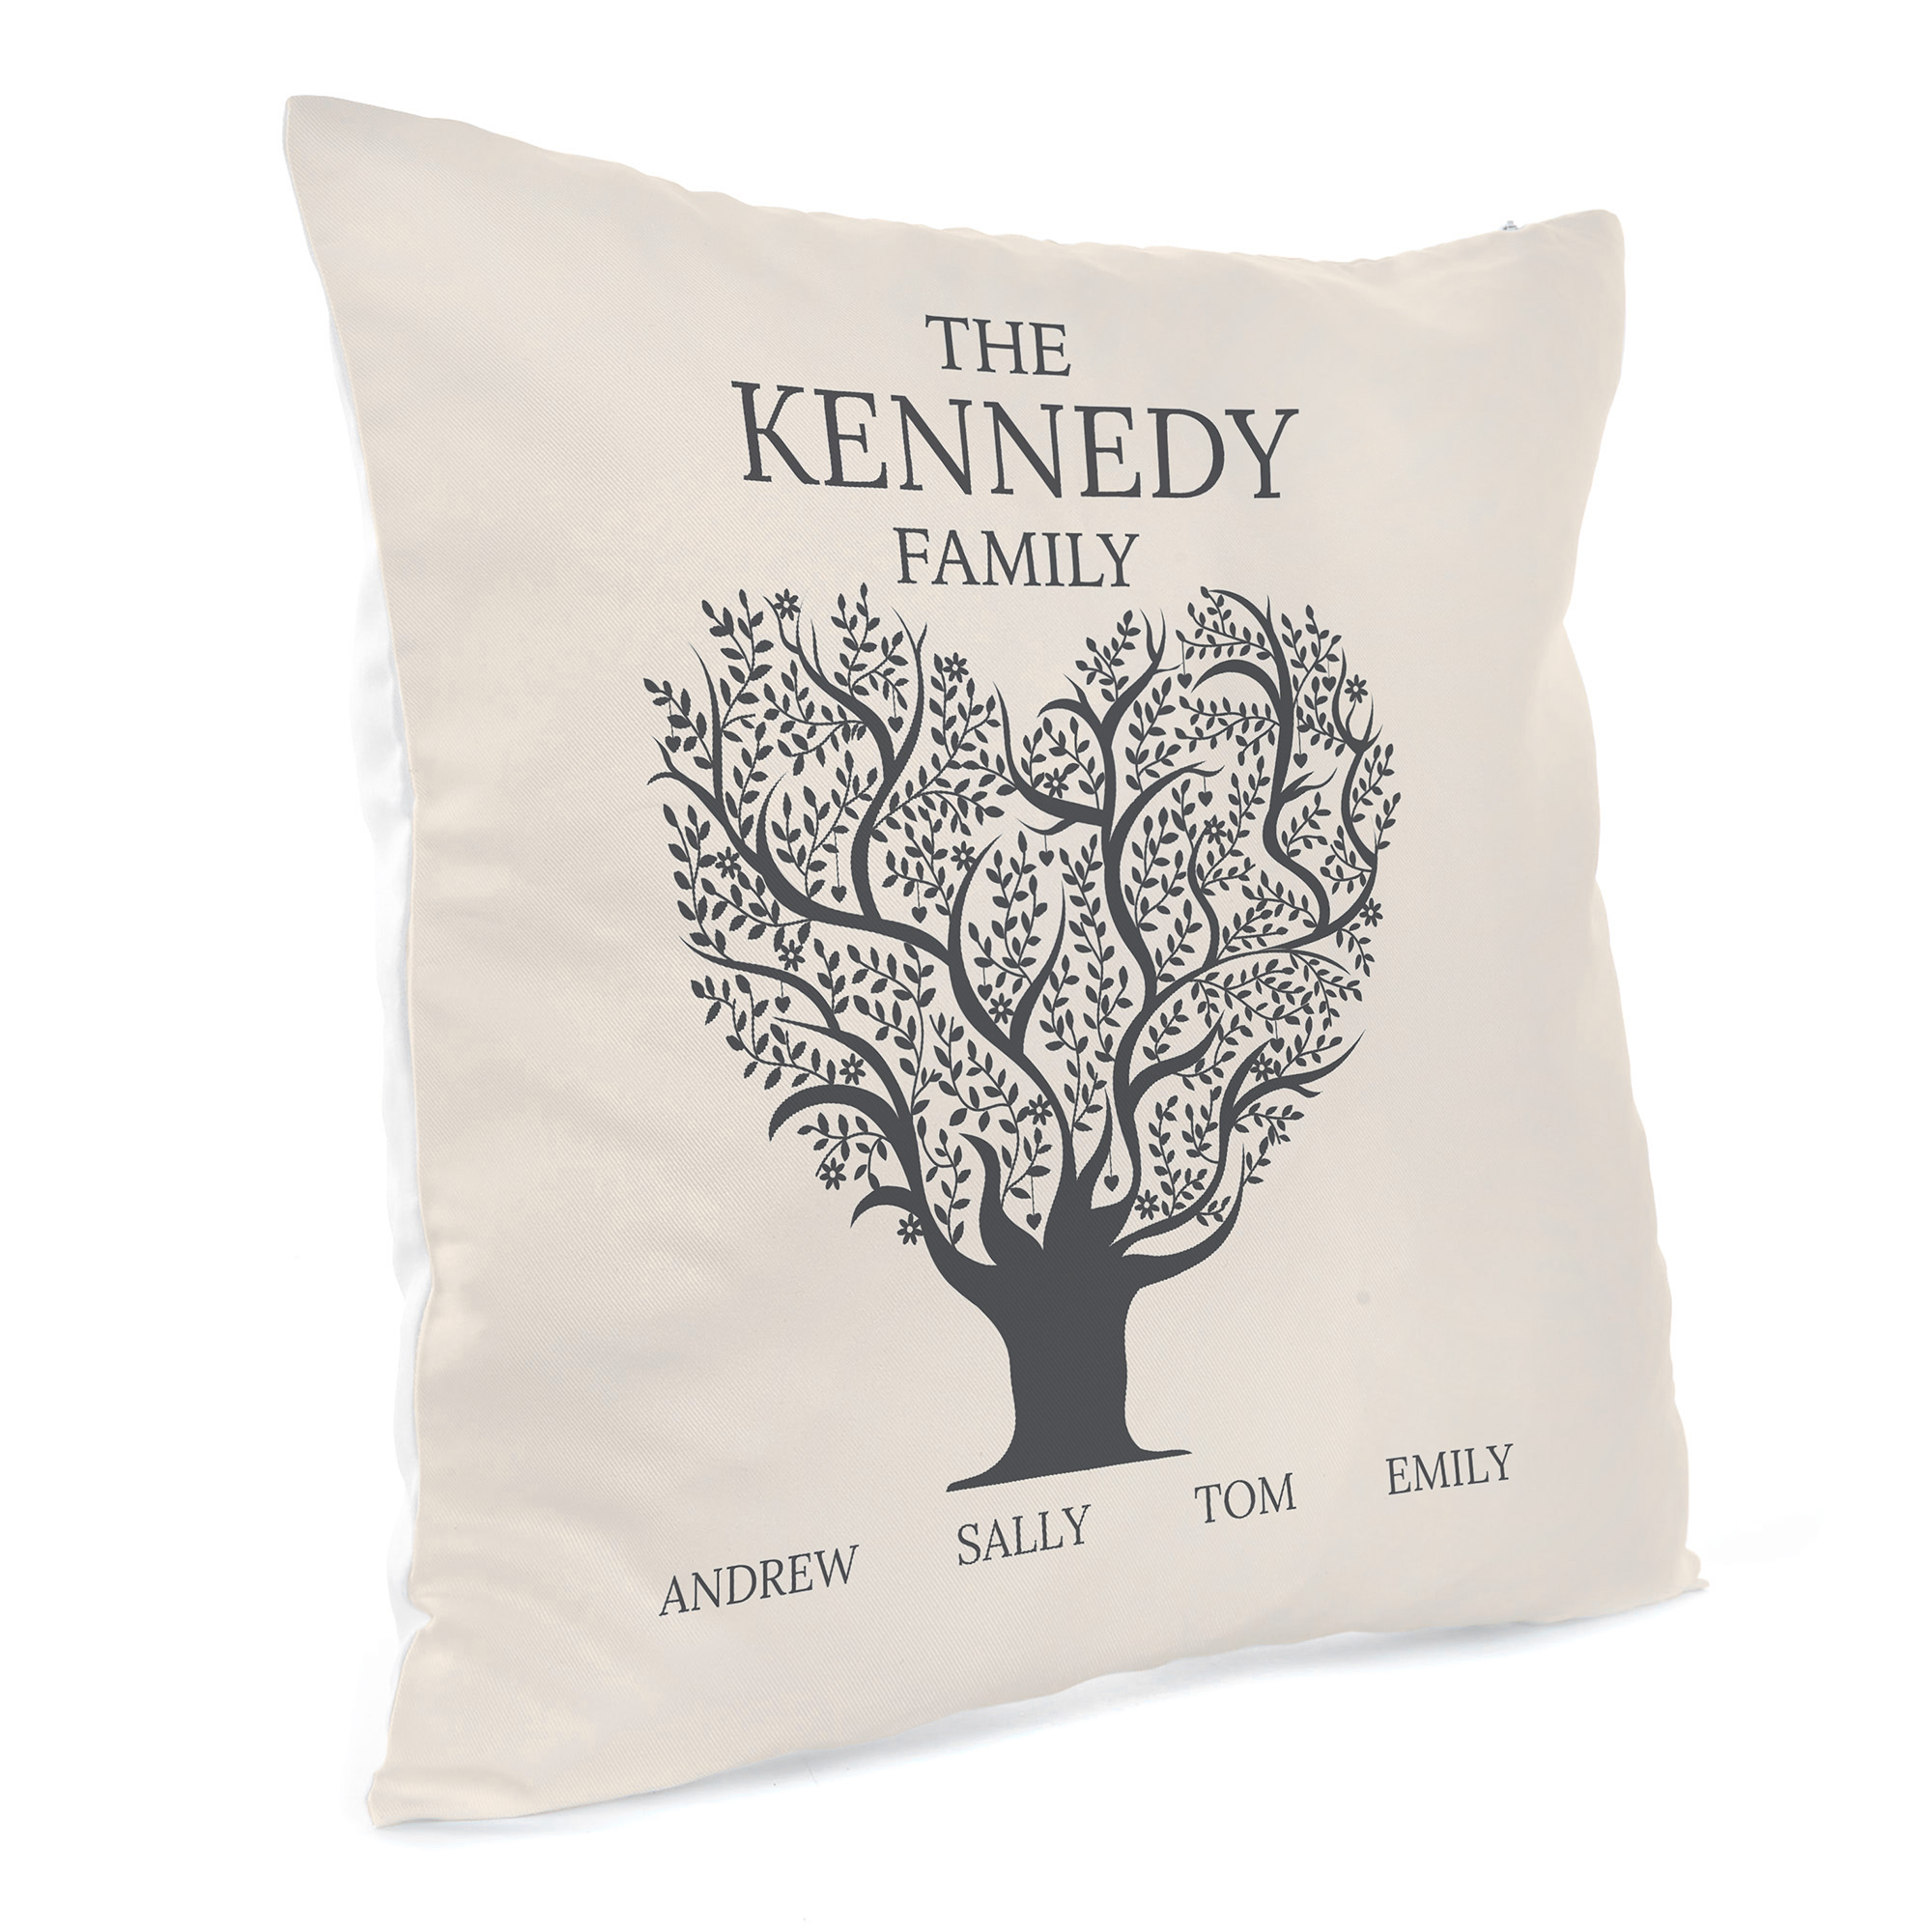 Personalised Family Cushion - Family Tree With Names